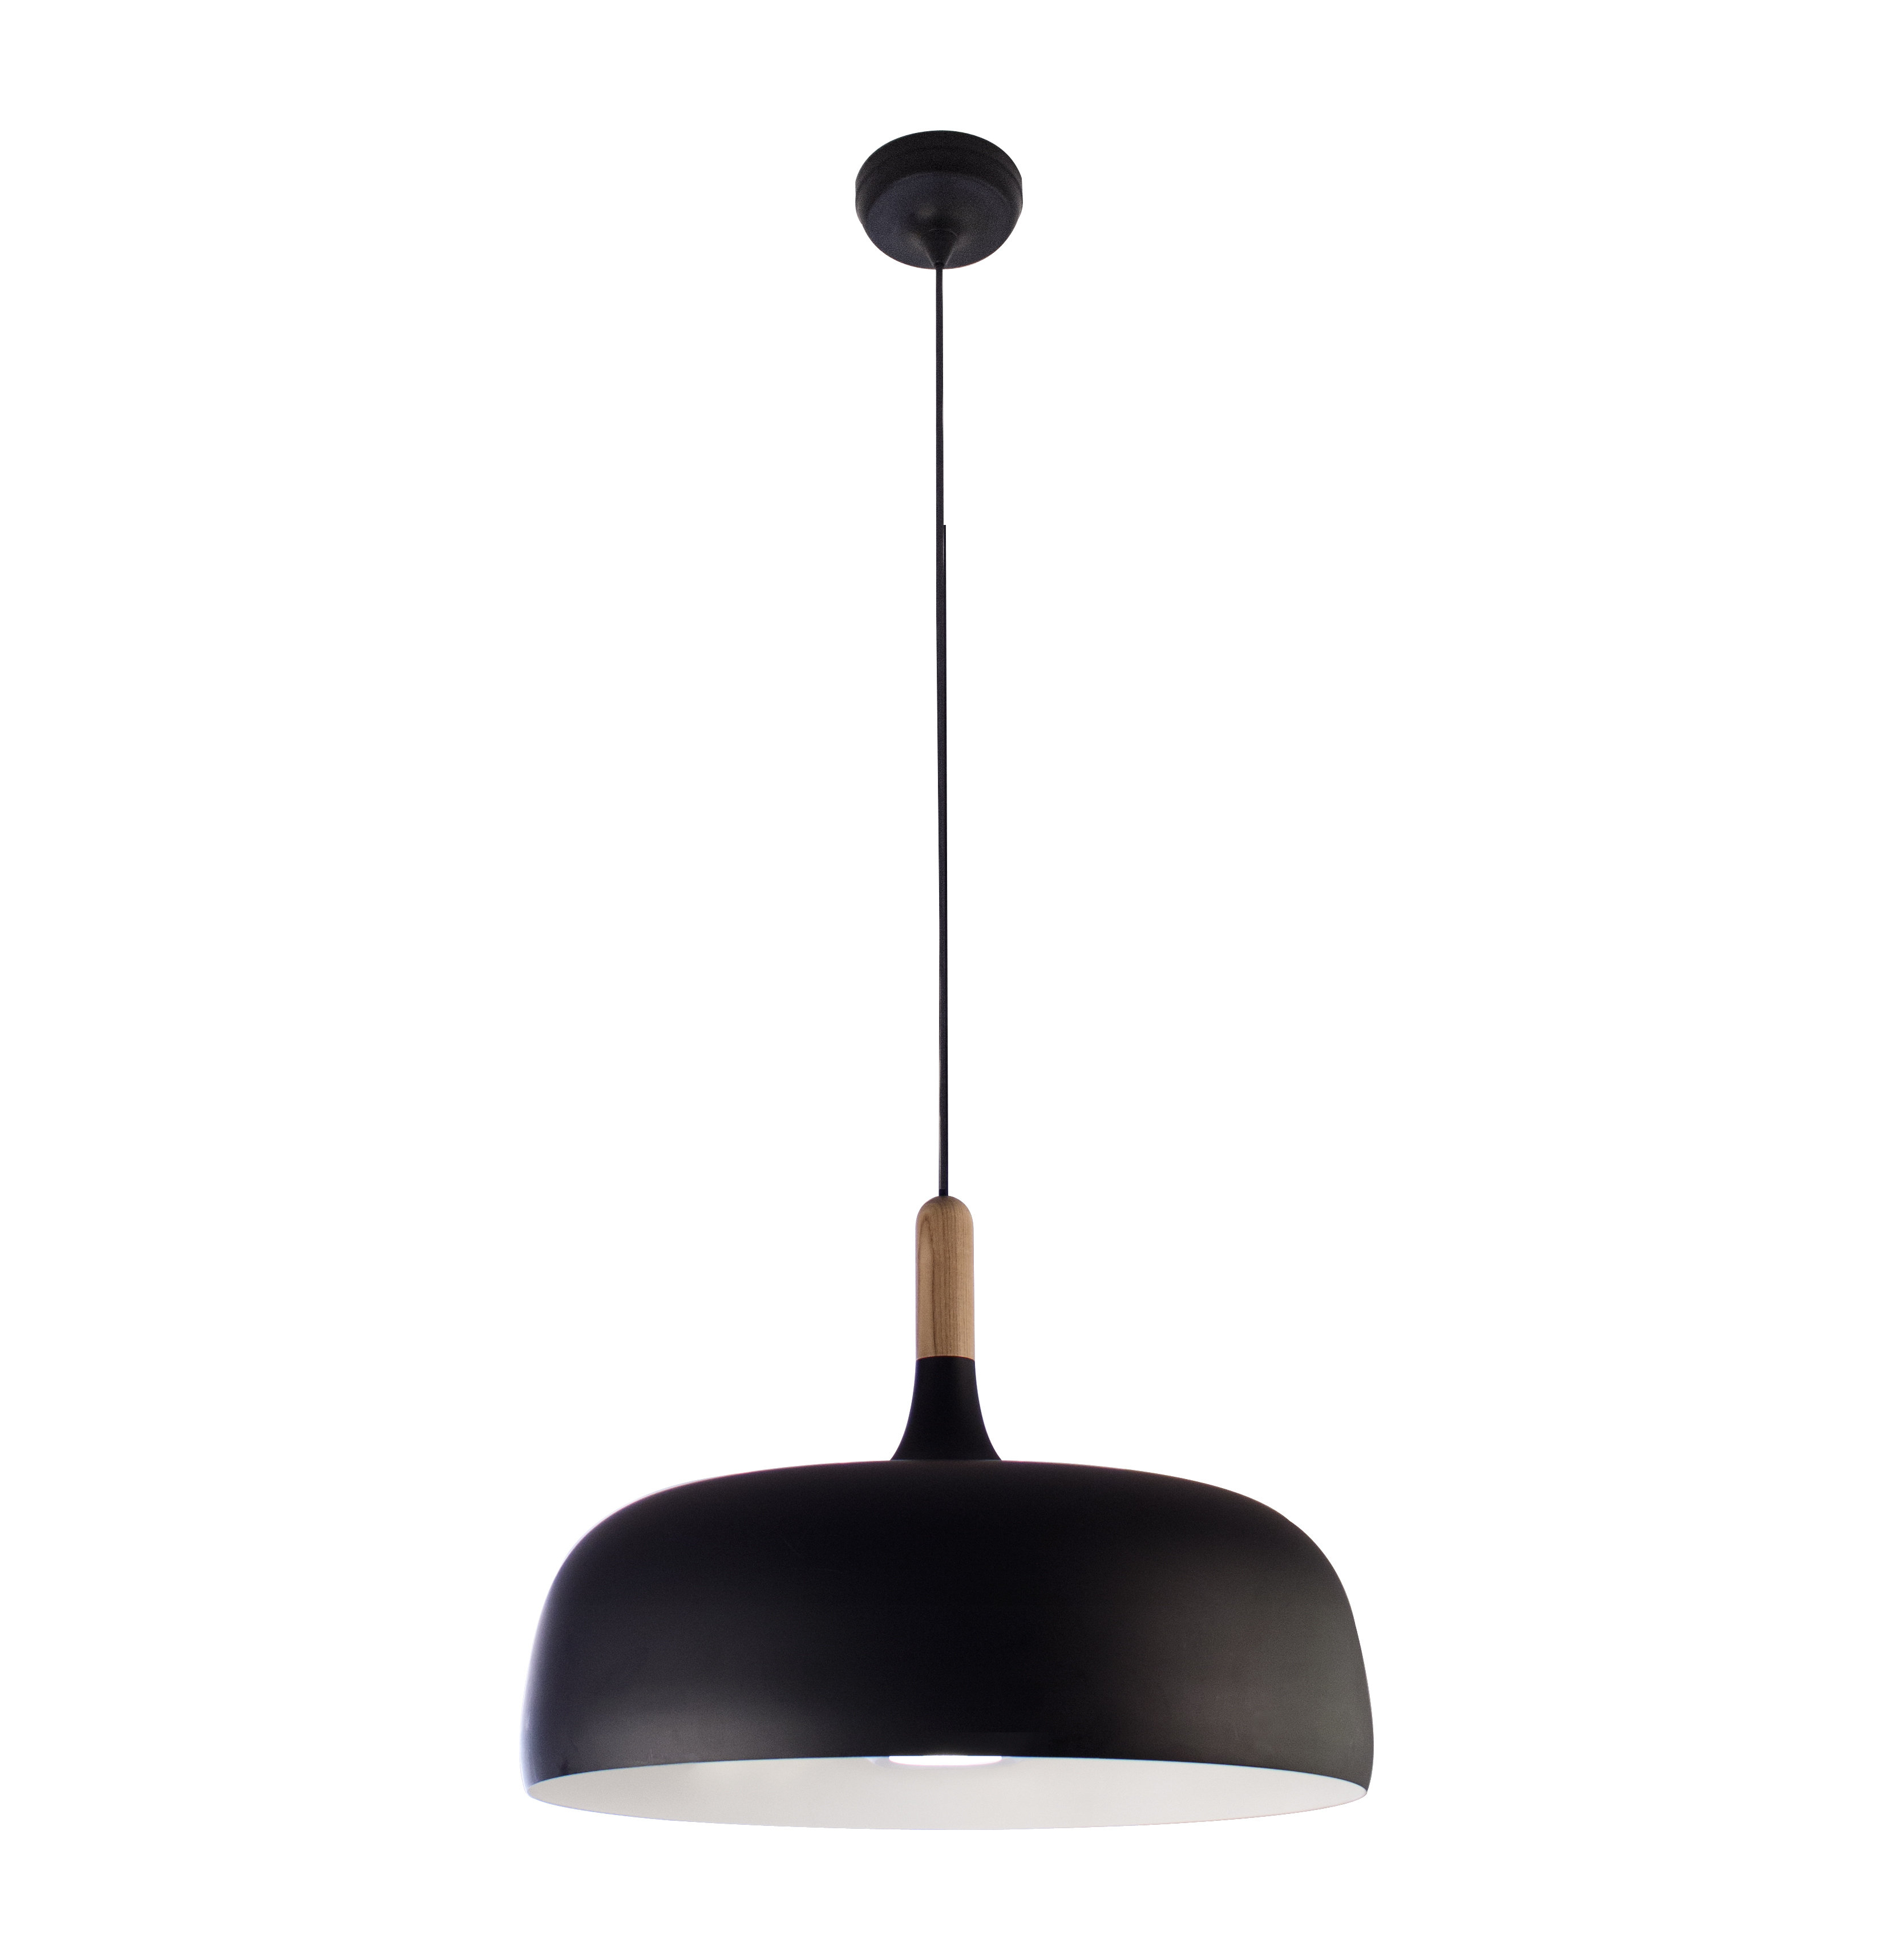 Ryker 1 Light Single Dome Pendant Throughout Latest Gattis 1 Light Dome Pendants (Gallery 12 of 20)